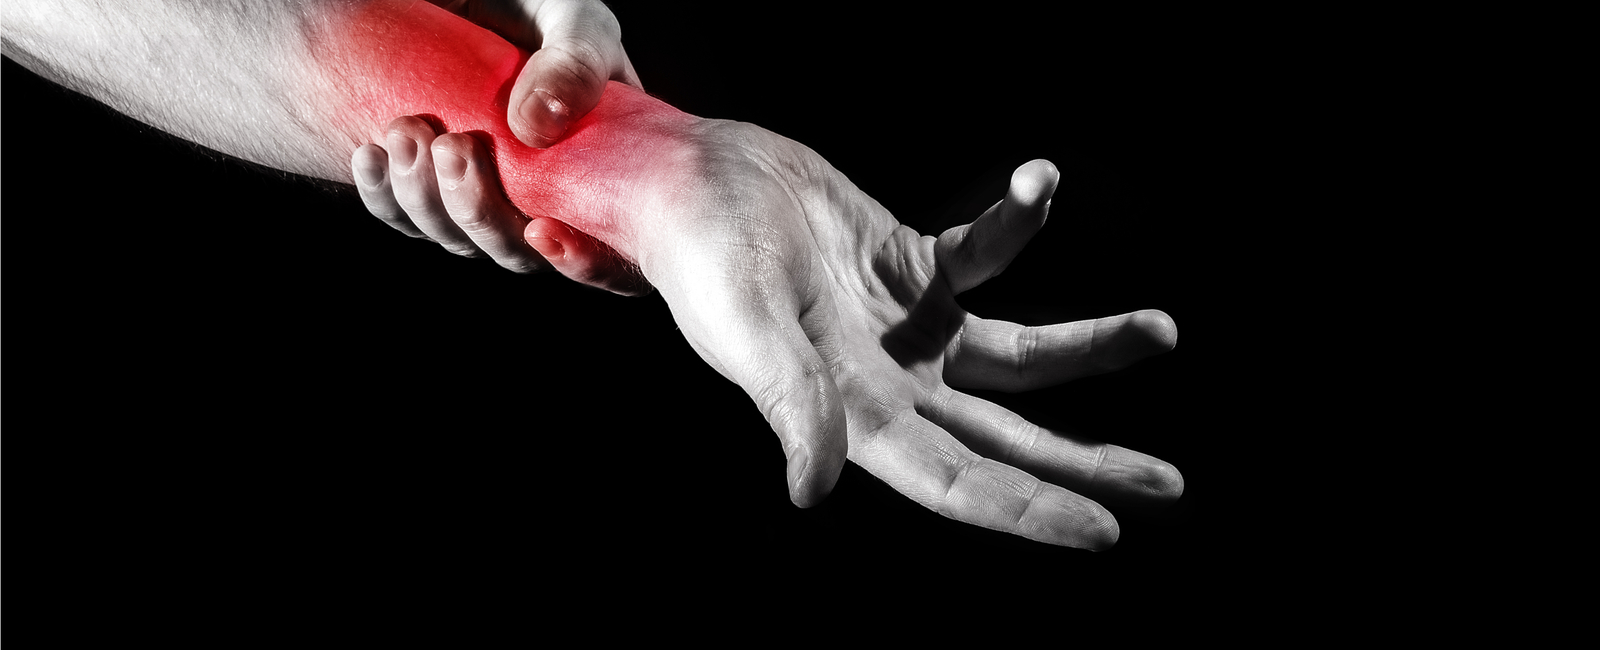 CARPAL TUNNEL SYNDROME – Learn The Treatment Options